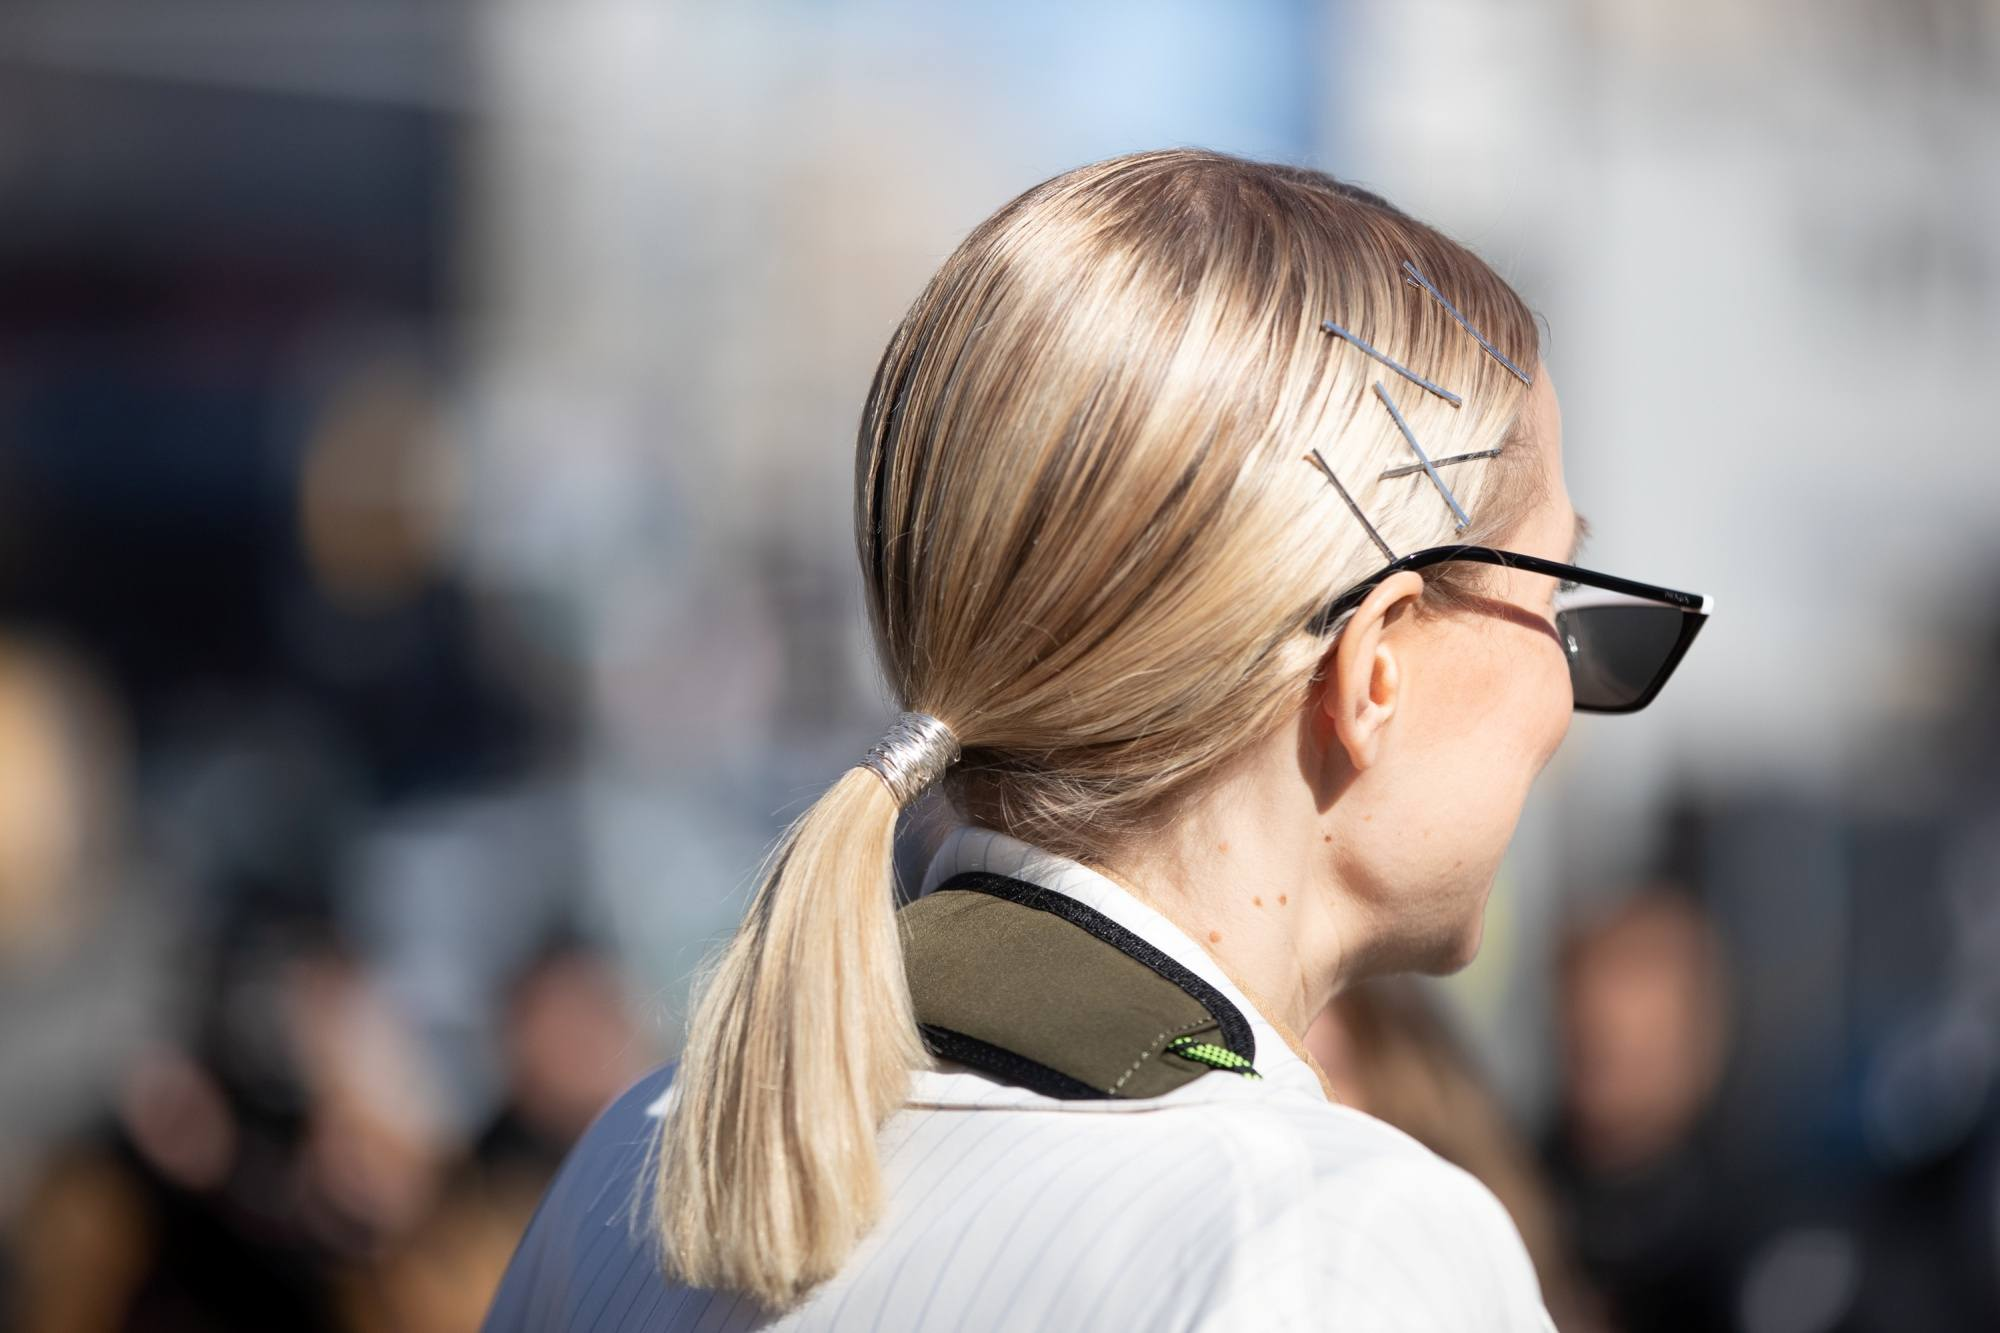 Street style hair inspiration: Back shot of a woman with shoulder length blonde hair in a ponytail outdoors